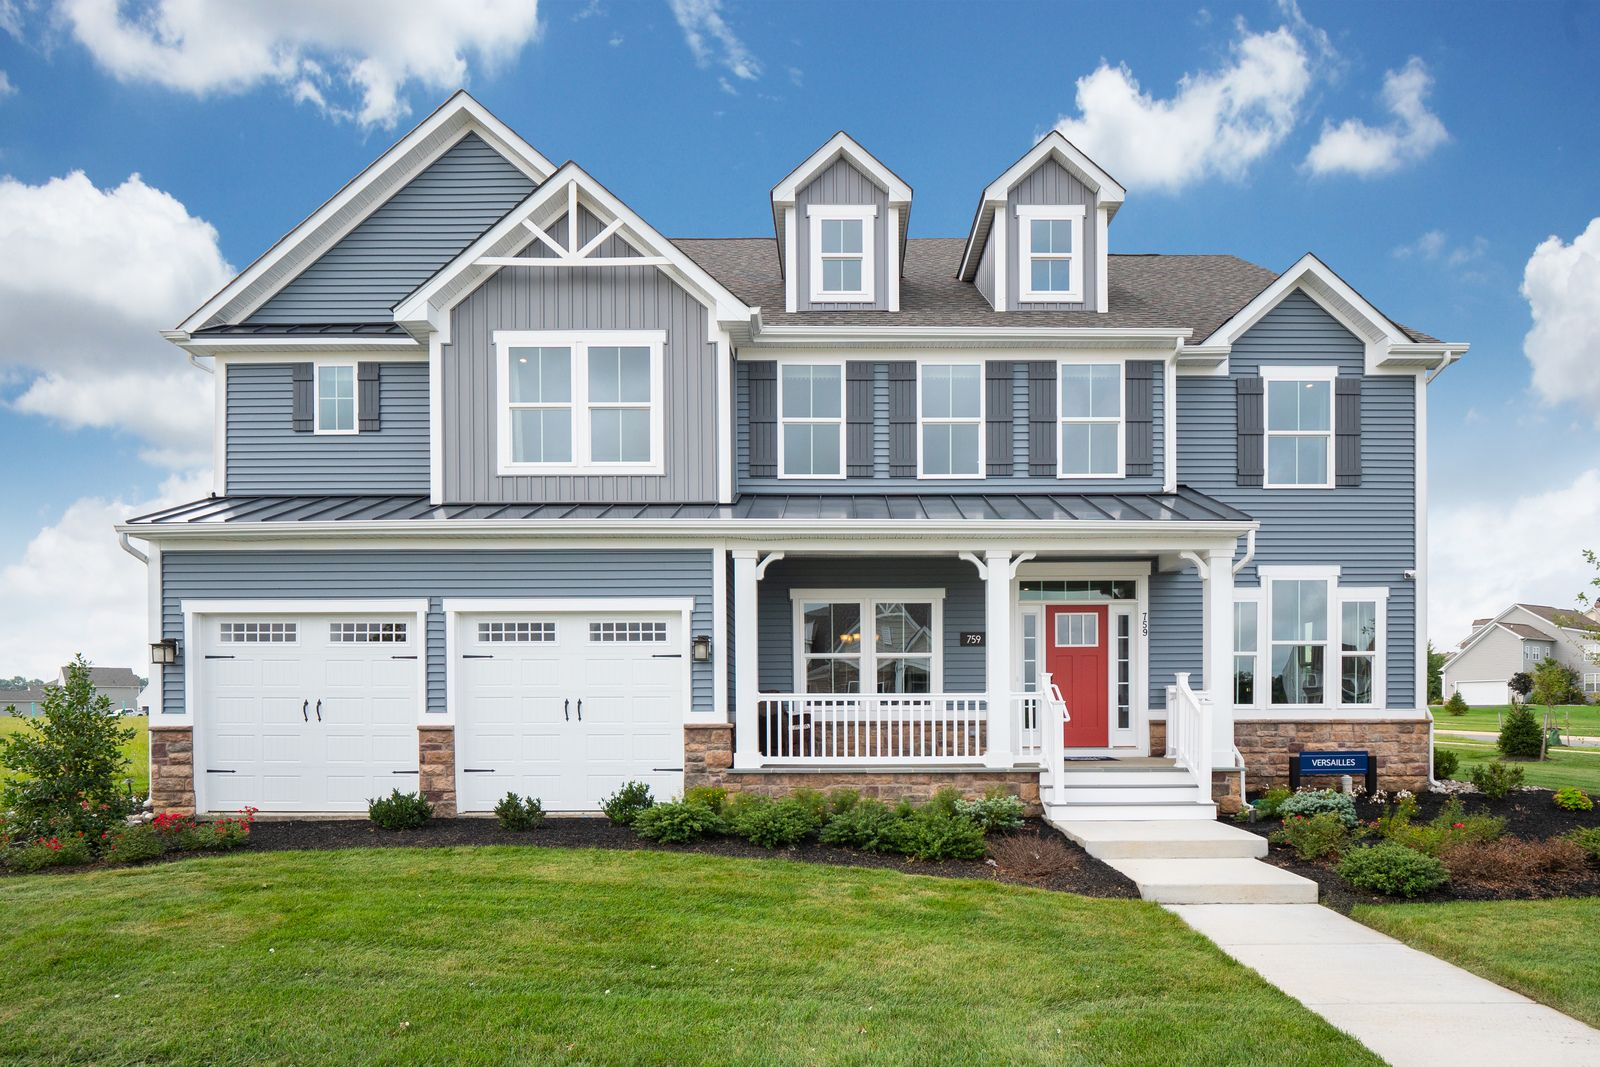 WELCOME TO SPRING VIEW ESTATES IN WALKERSVILLE, MD:Enjoy space and privacy at Spring View Estates with 1/3+ acre homesites, panoramic mountain views and only 3 miles to Frederick.Schedule an appointment today!